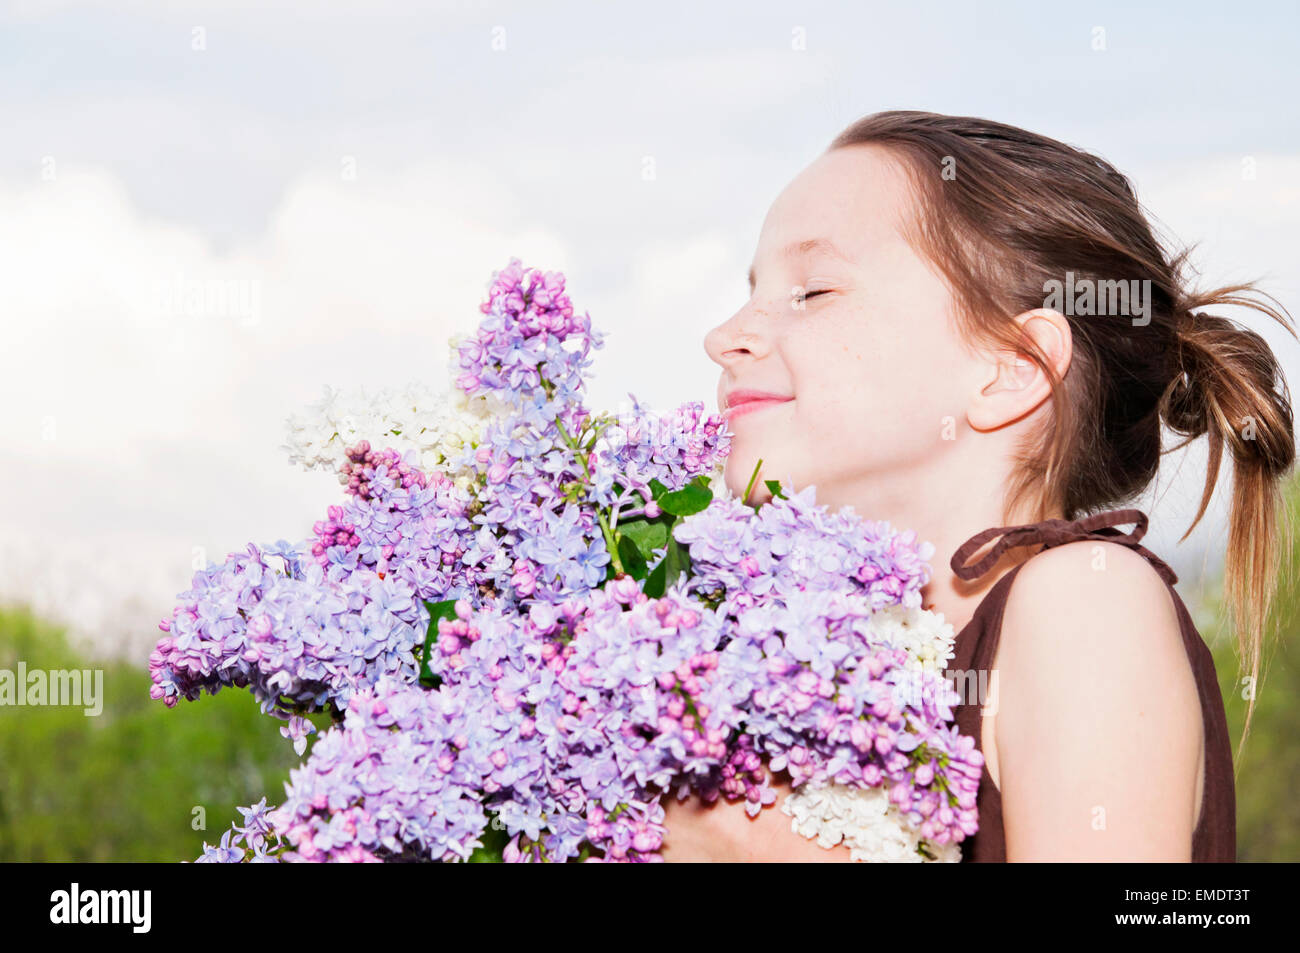 girl smelling lilac flowers - Stock Image